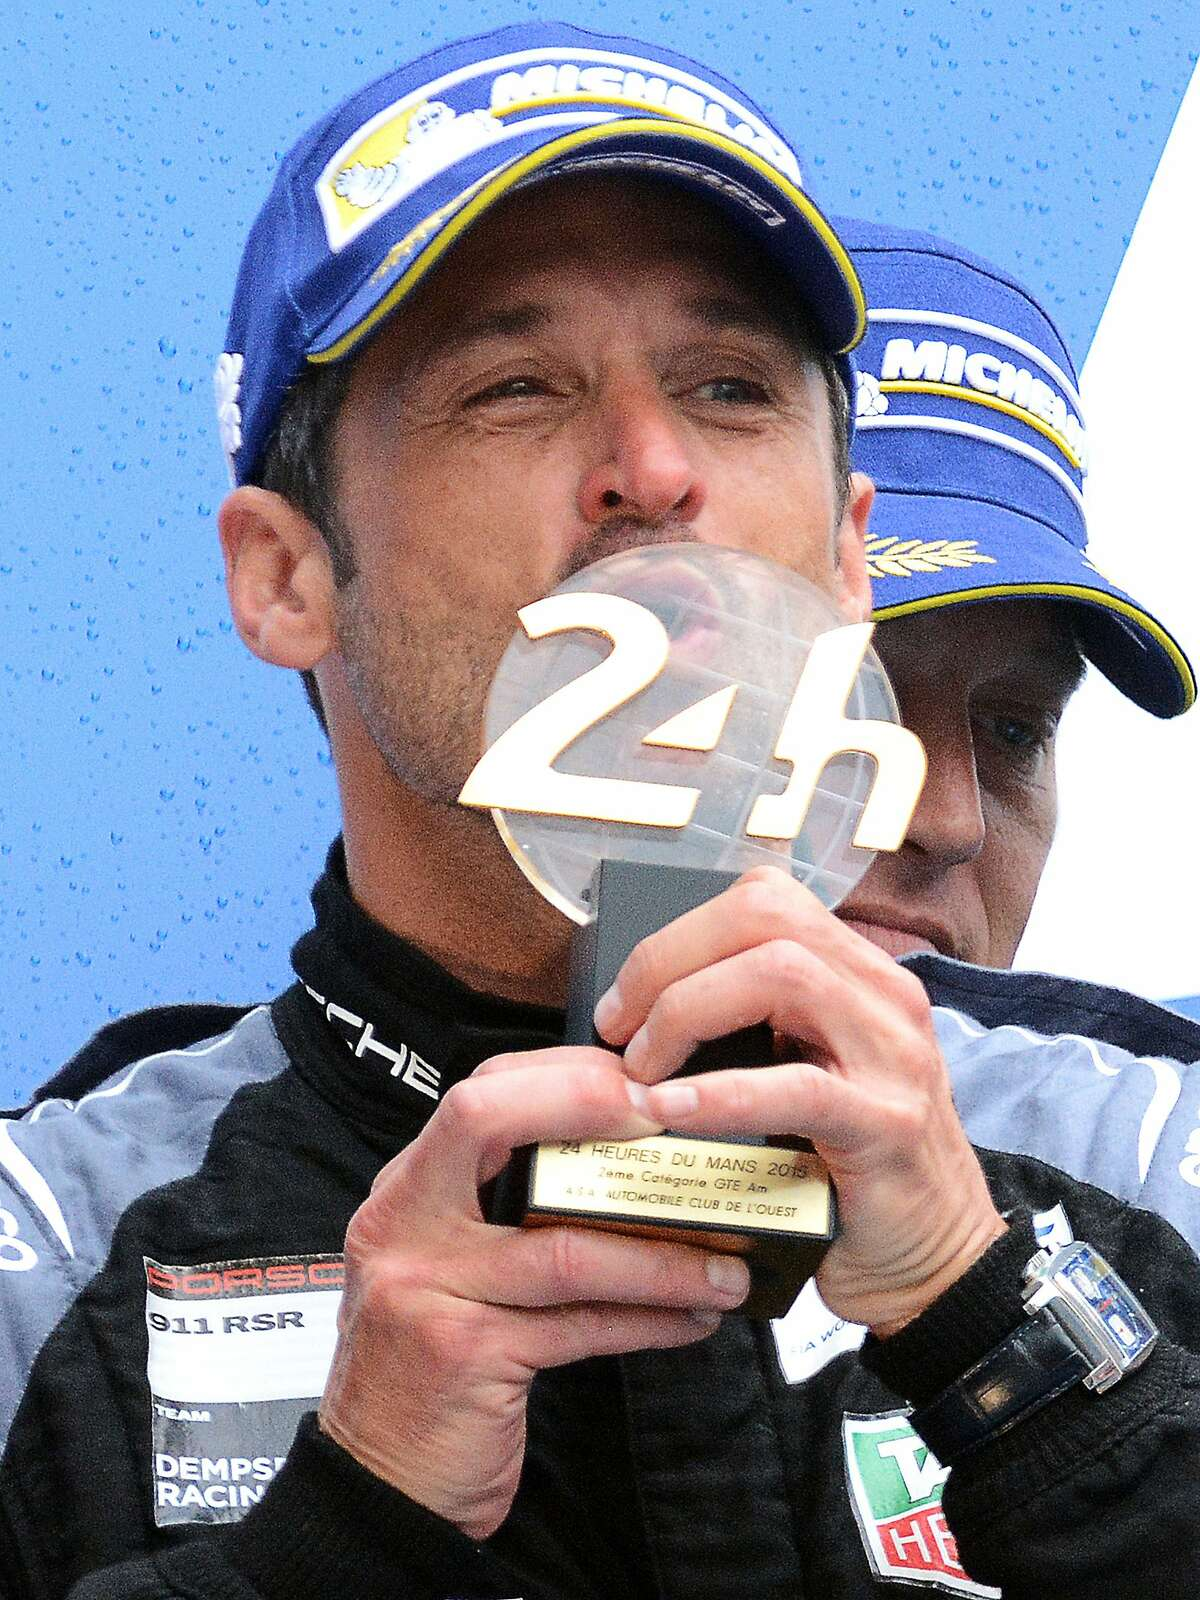 US Patrick Dempsey kisses his trophy on the podium the 83rd Le Mans 24 Hours endurance race on June 14, 2015 in Le Mans, western France, after taking secong place in the LMGTE-Am category with his Porsche 911 RSR N°77. US Patrick Long, Germany's Marco Seefried and US Patrick Dempsey took the second place LMGTE-Am category. AFP PHOTO / JEAN-FRANCOIS MONIERJEAN-FRANCOIS MONIER/AFP/Getty Images